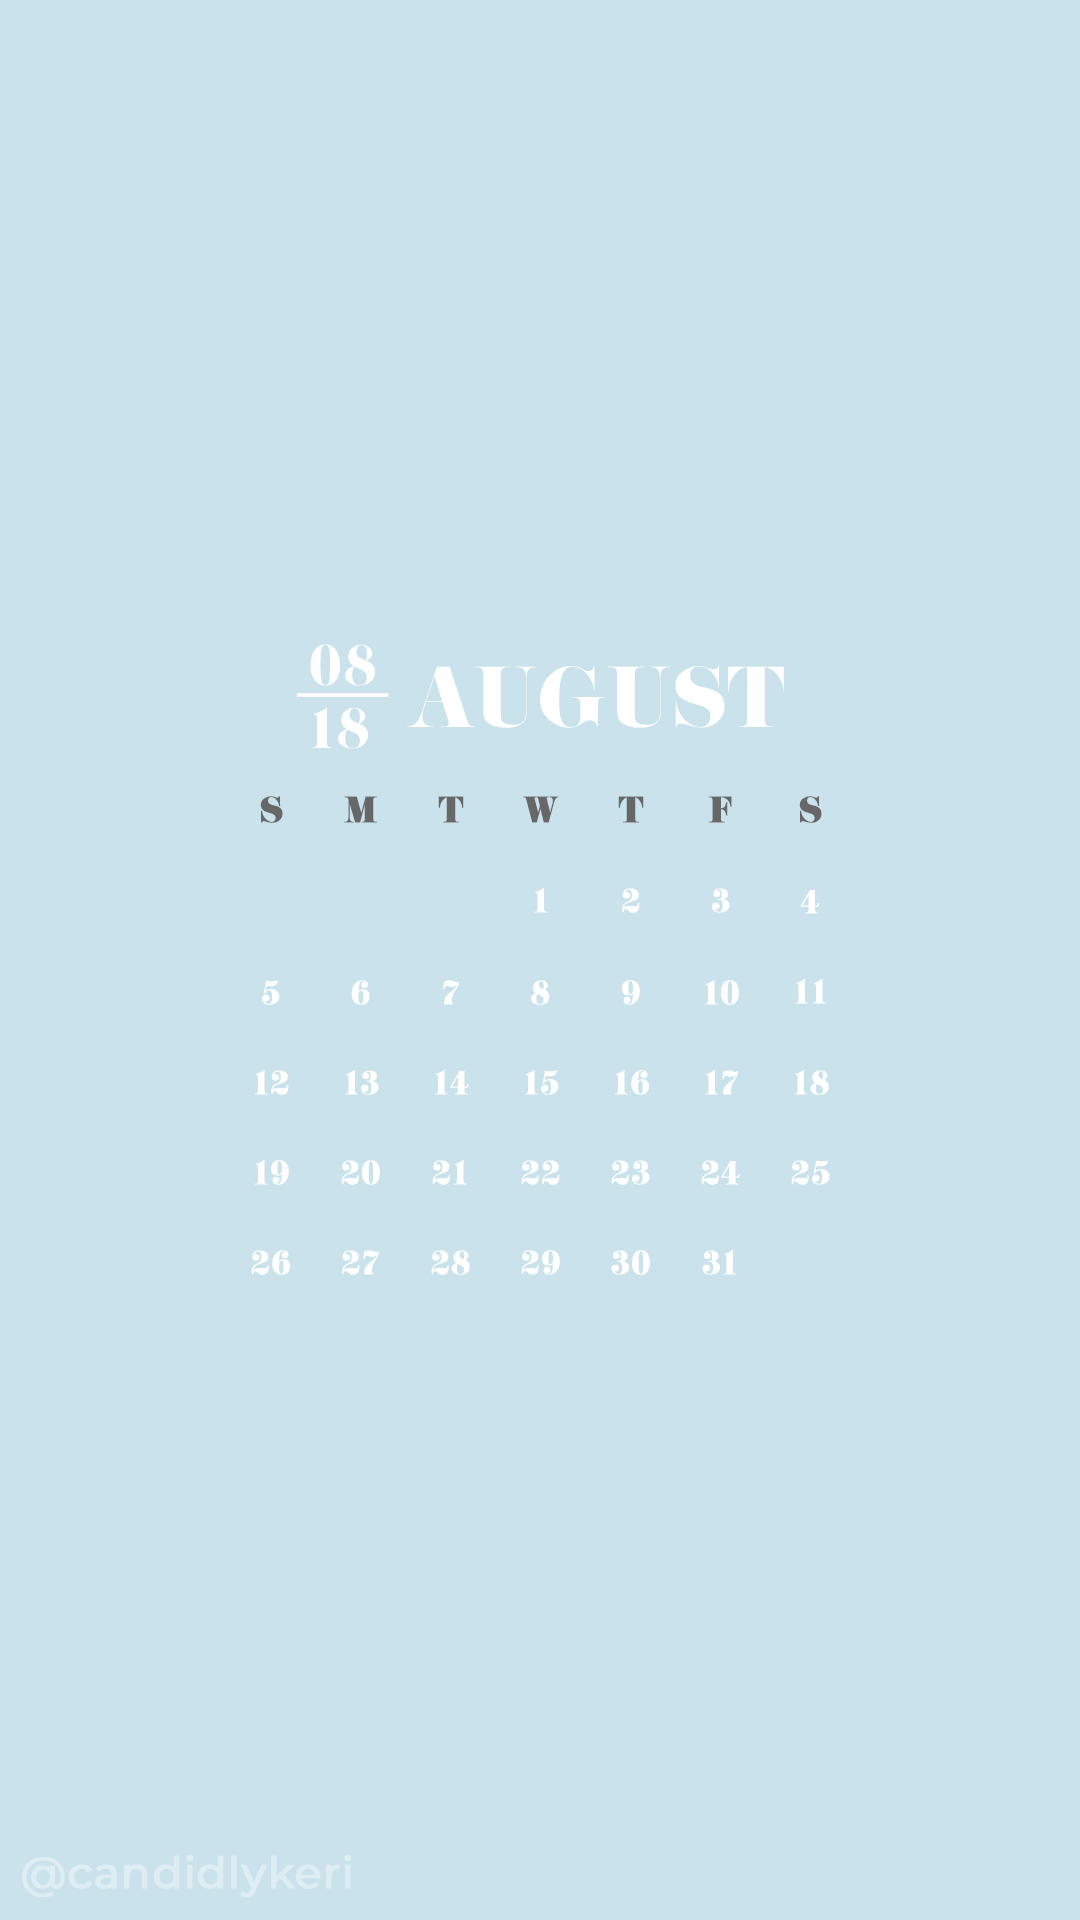 2018_August6M